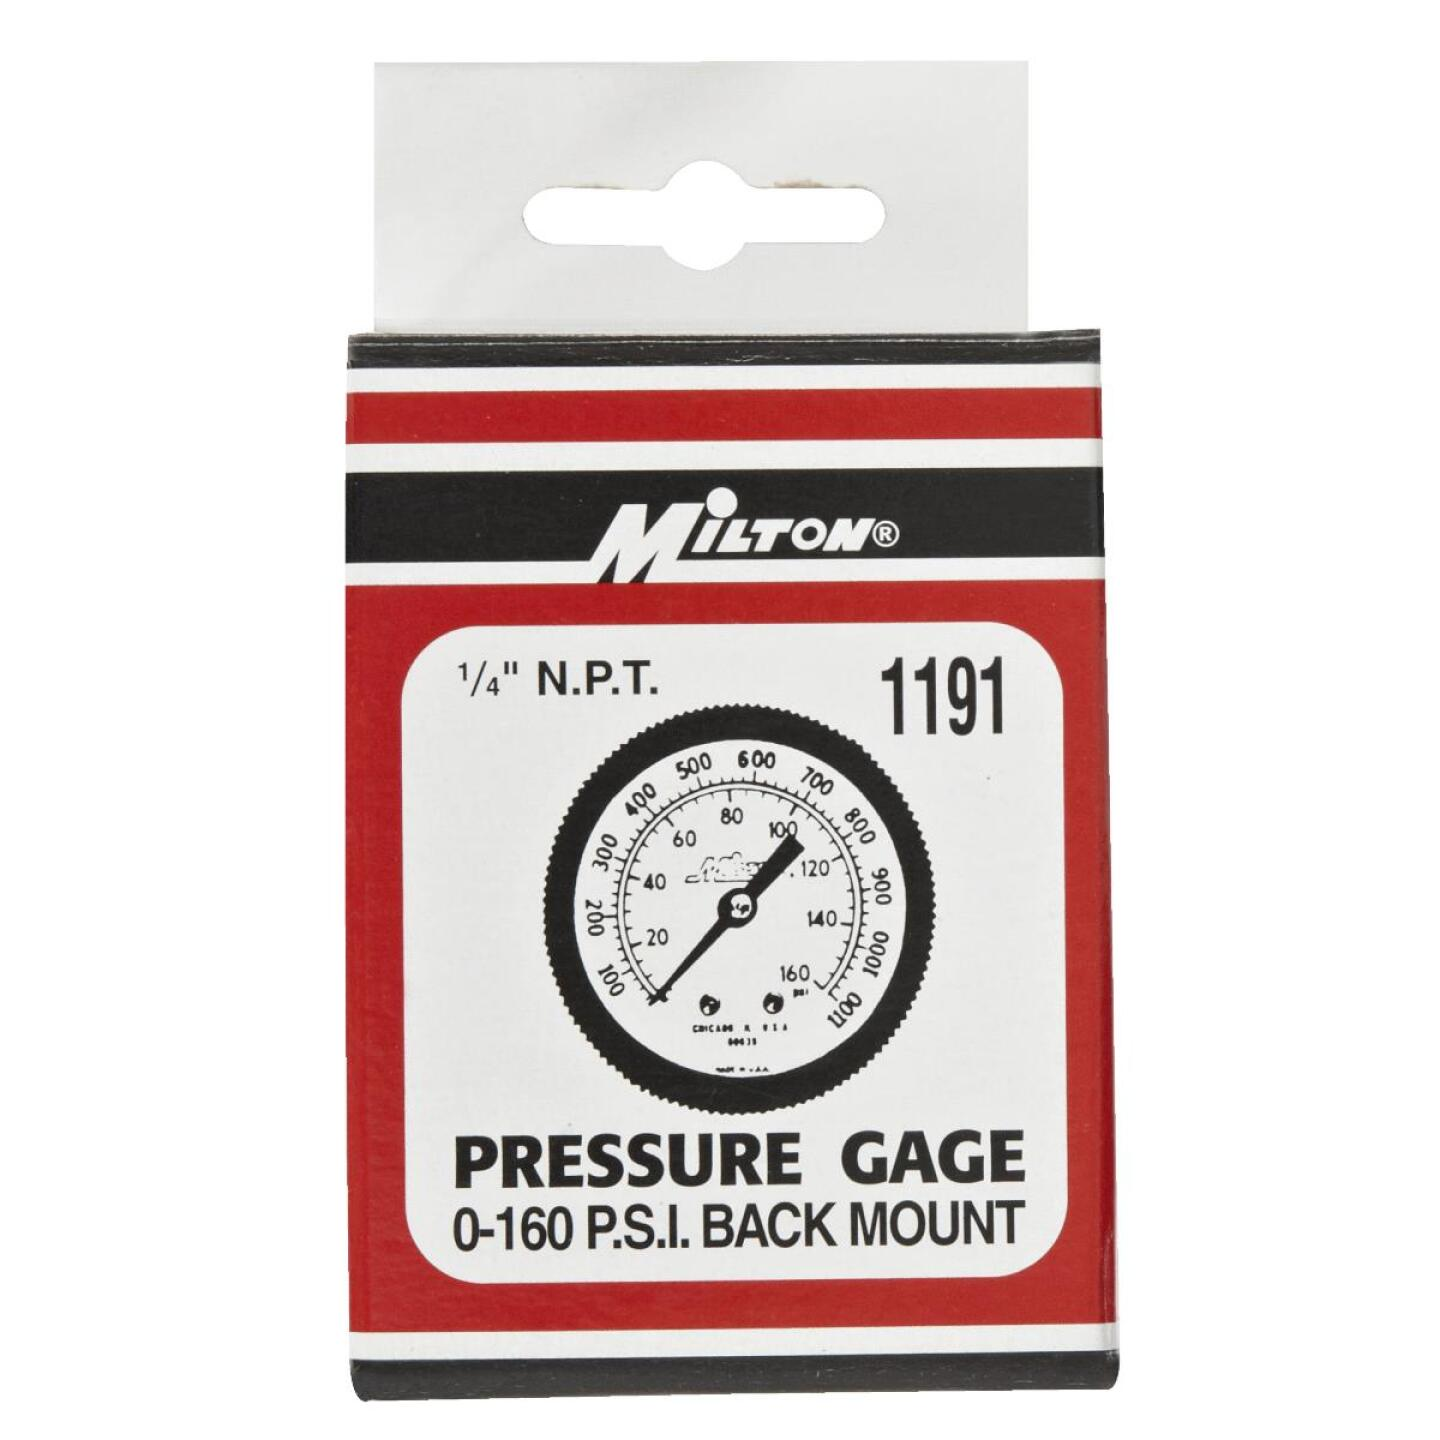 Milton 1/4 In. NPT Back Mount Mini Pressure Gauge Image 2